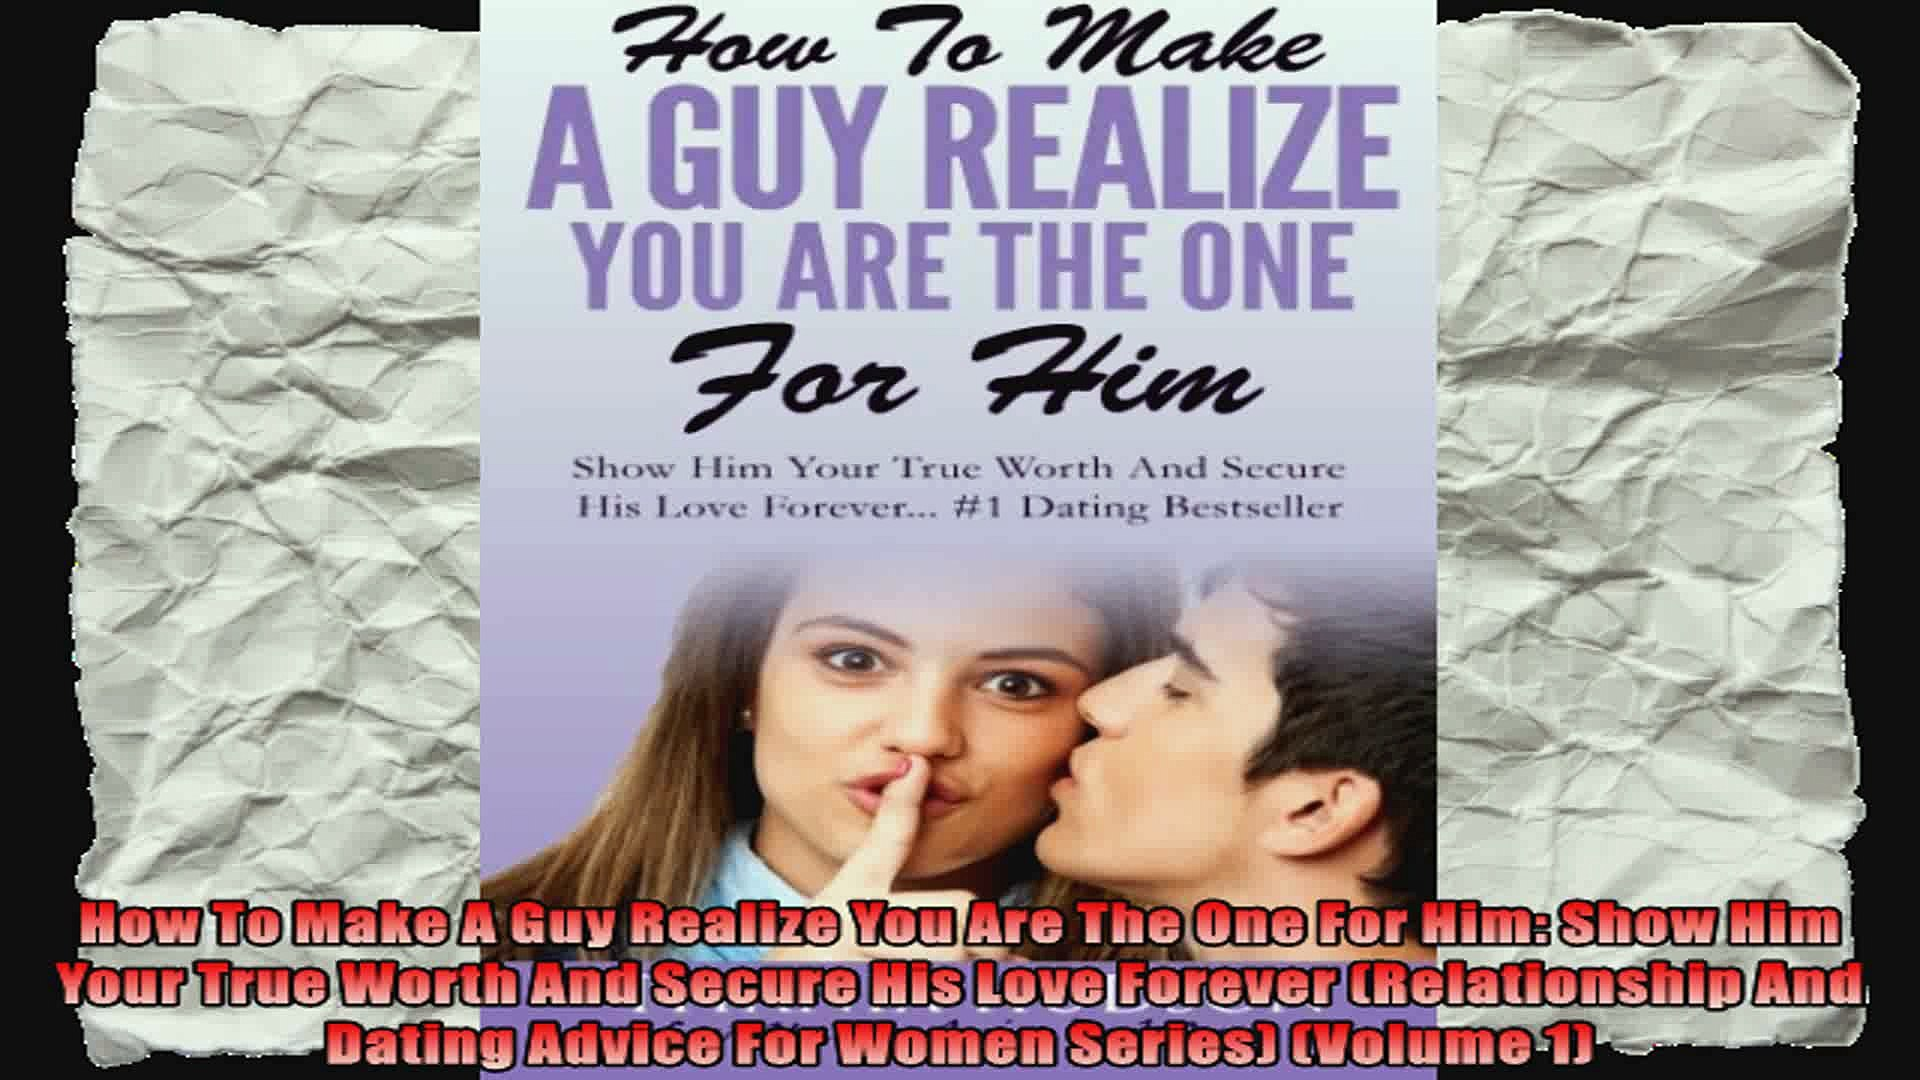 How To Make A Guy Realize You Are The One For Him Show Him Your True Worth  And Secure His